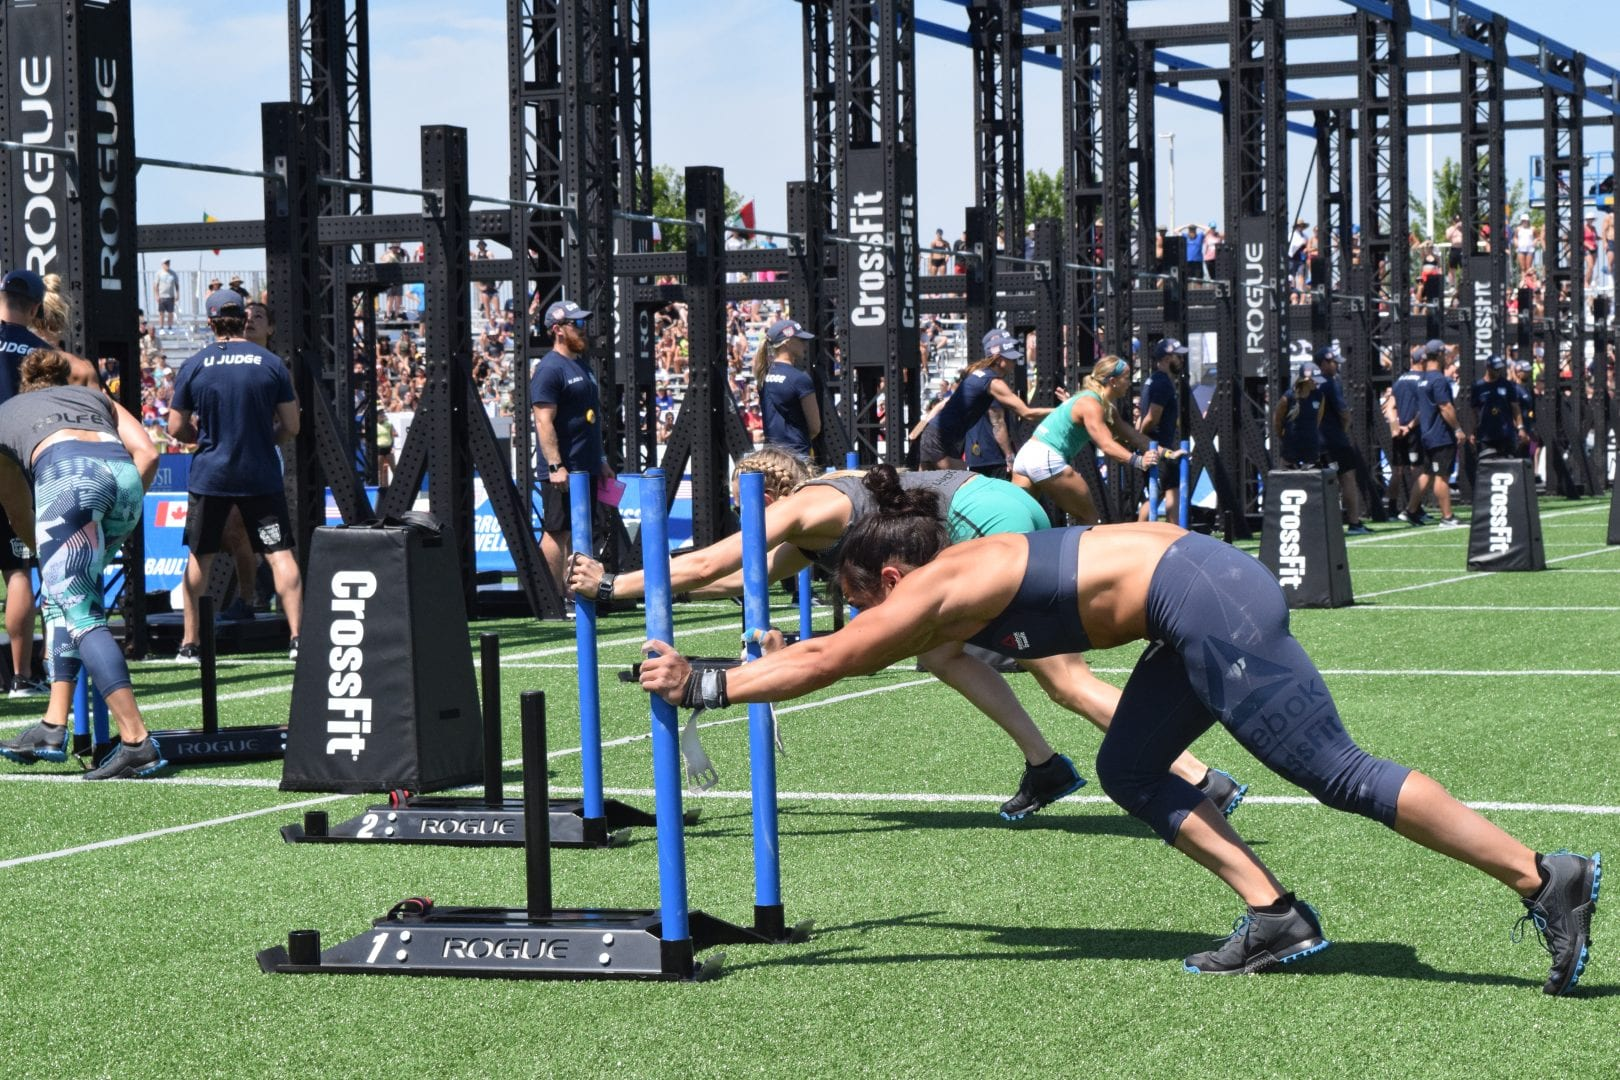 Anna Fragkou completes the Sprint Bicouplet event at the 2019 CrossFit Games.